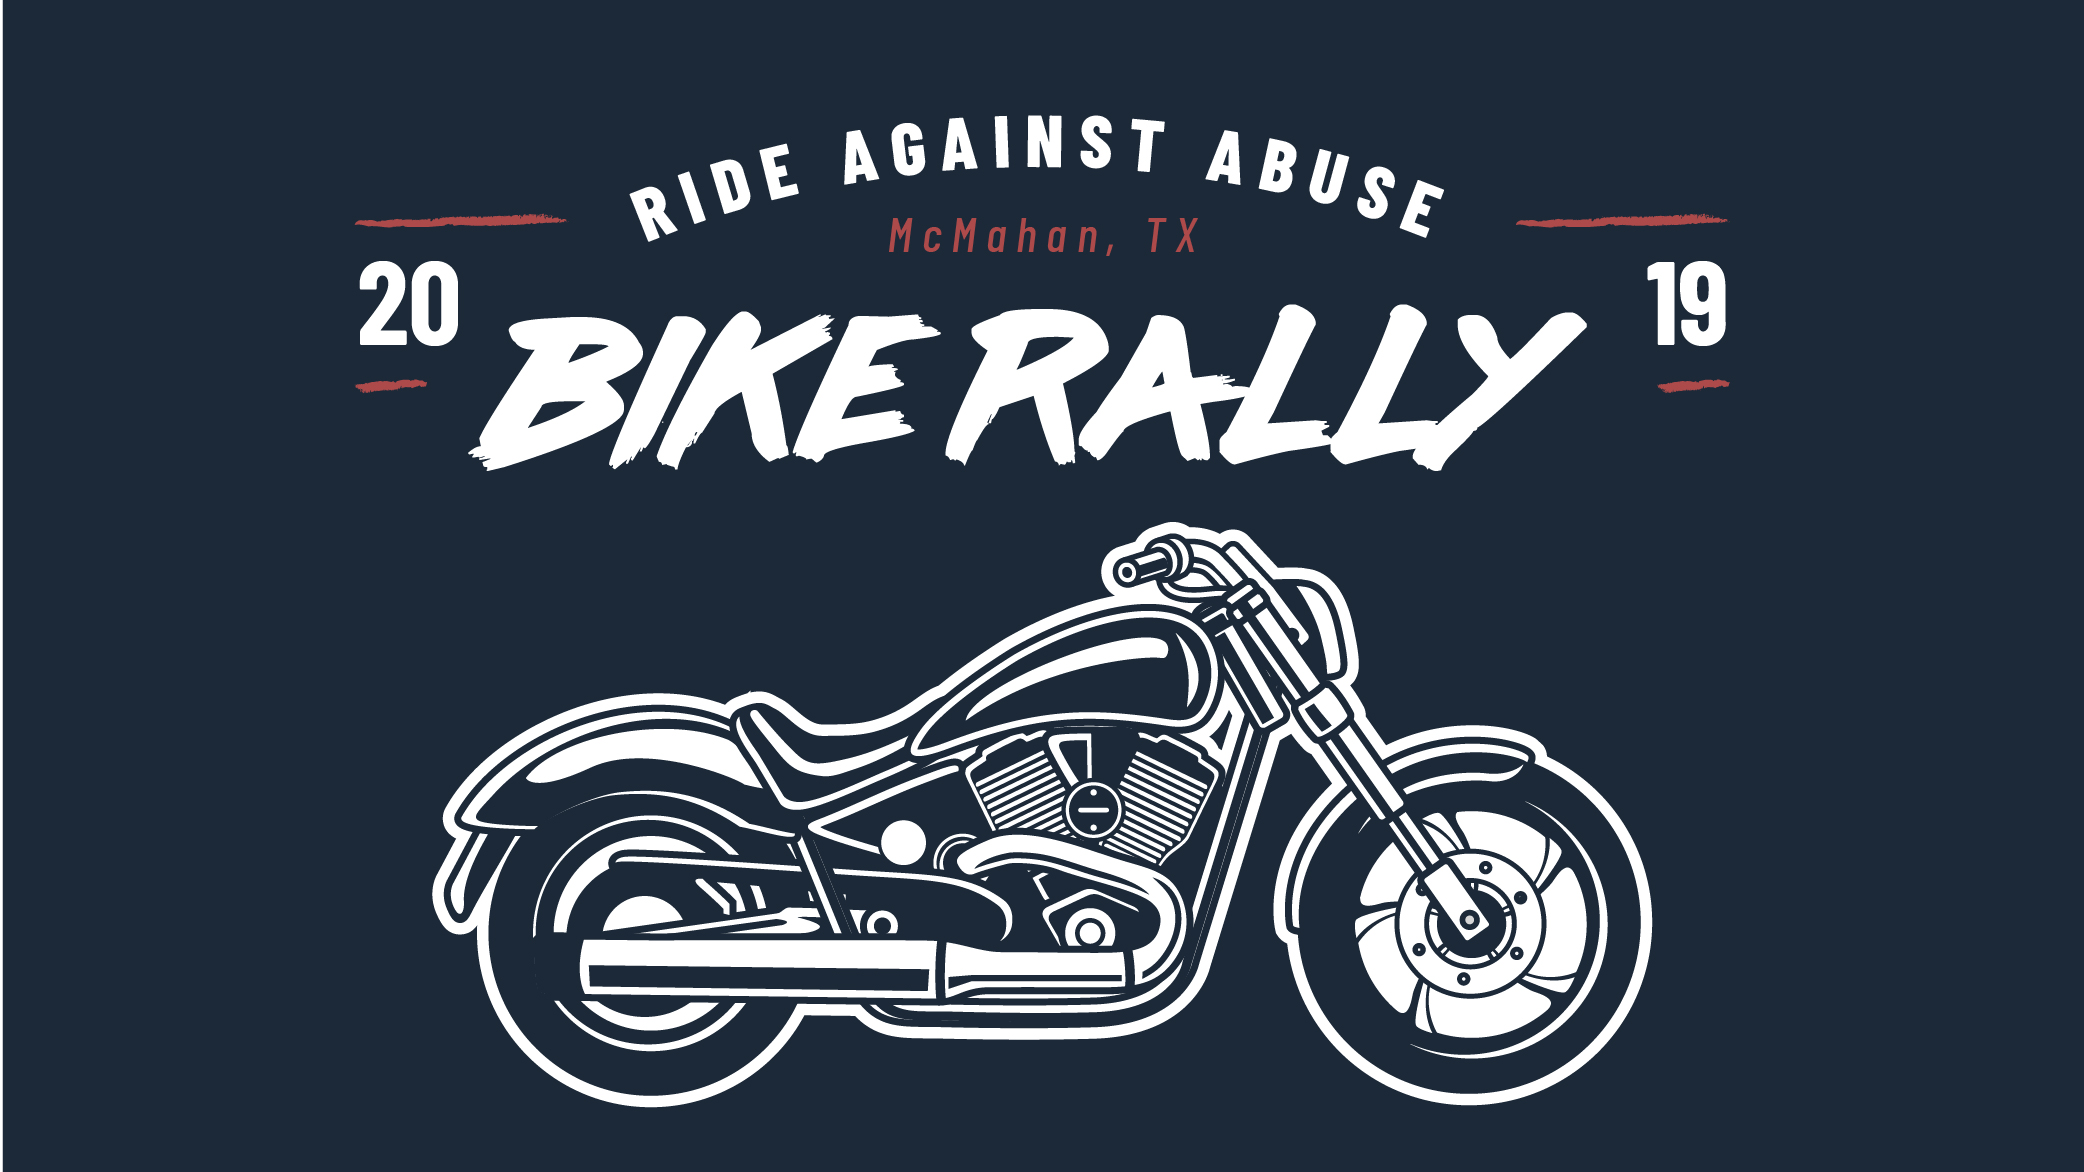 Rally Against Abuse